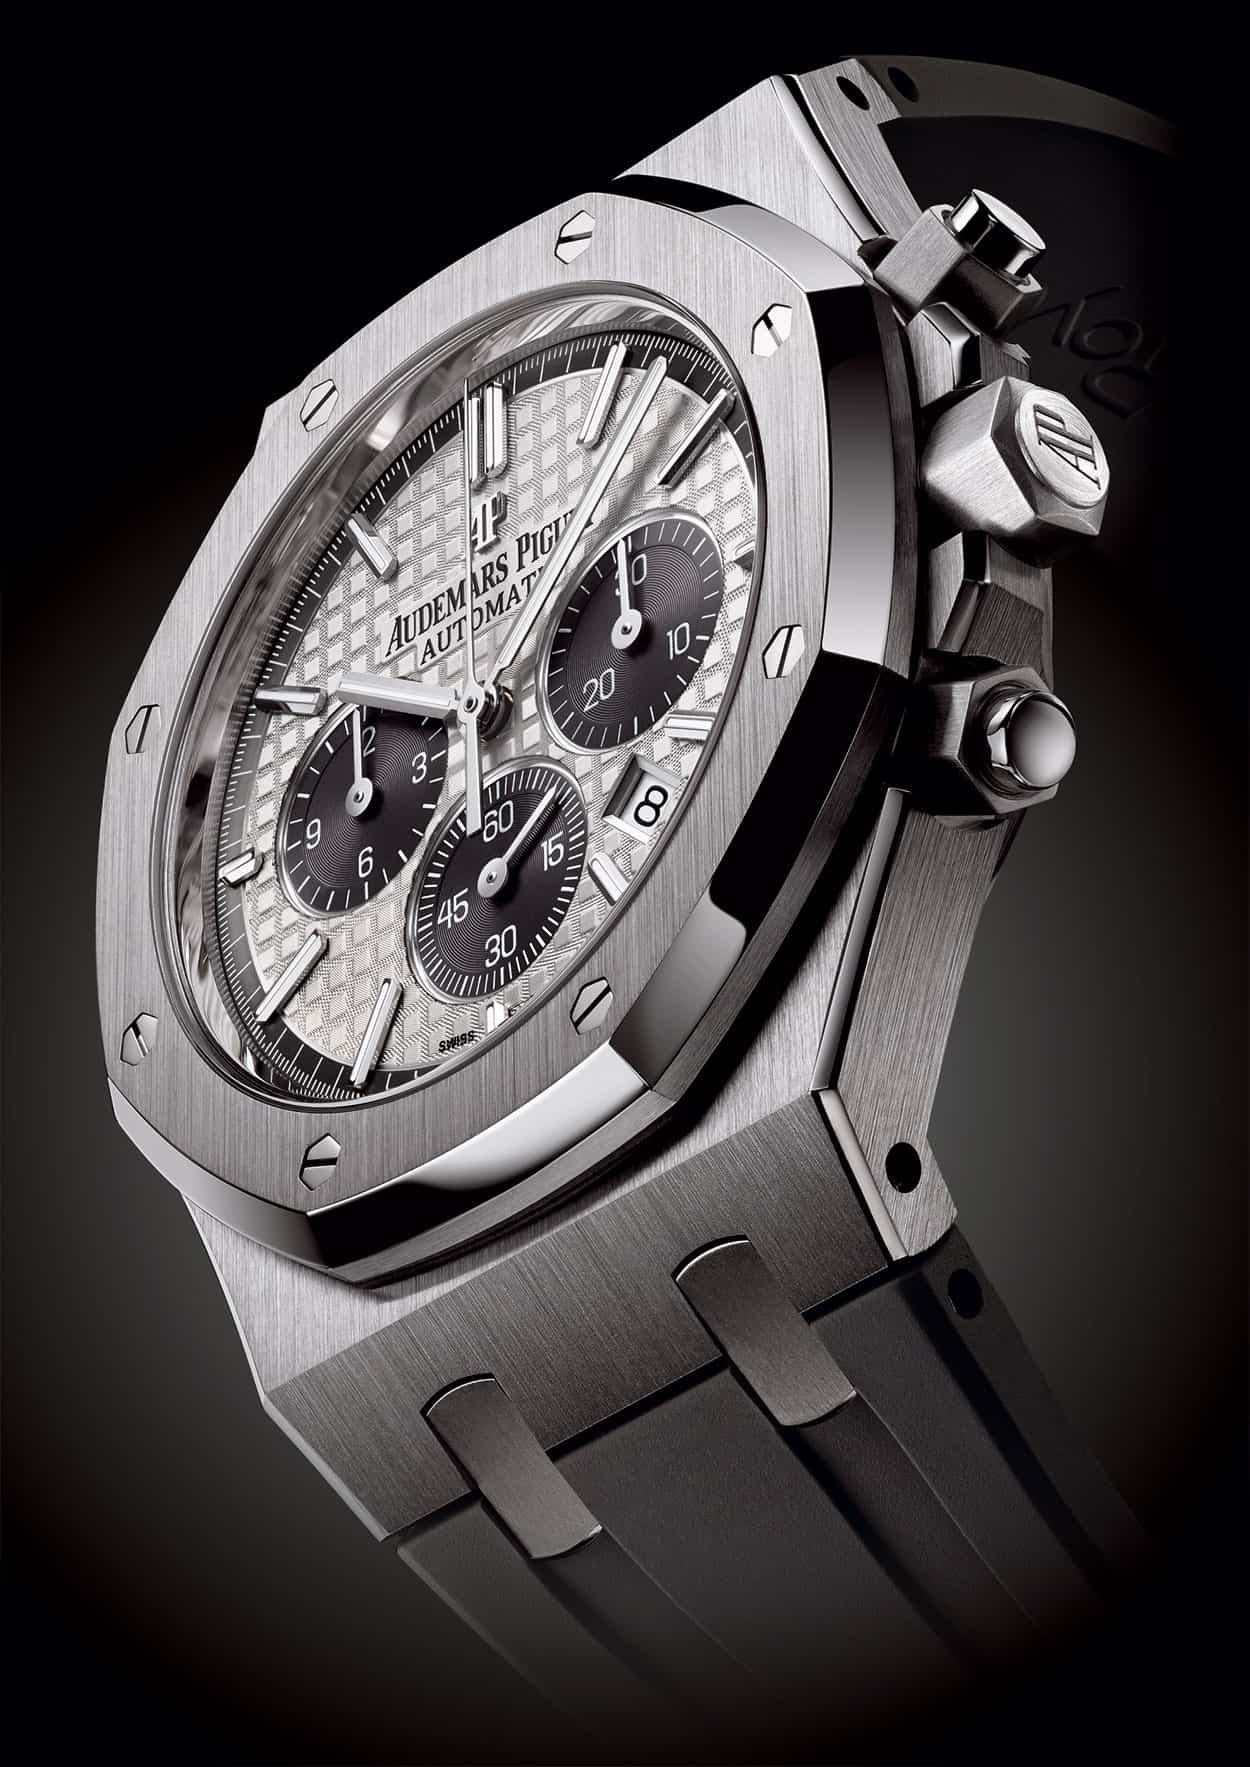 Audemars piguet royal oak chronograph qeii for Audemars watches